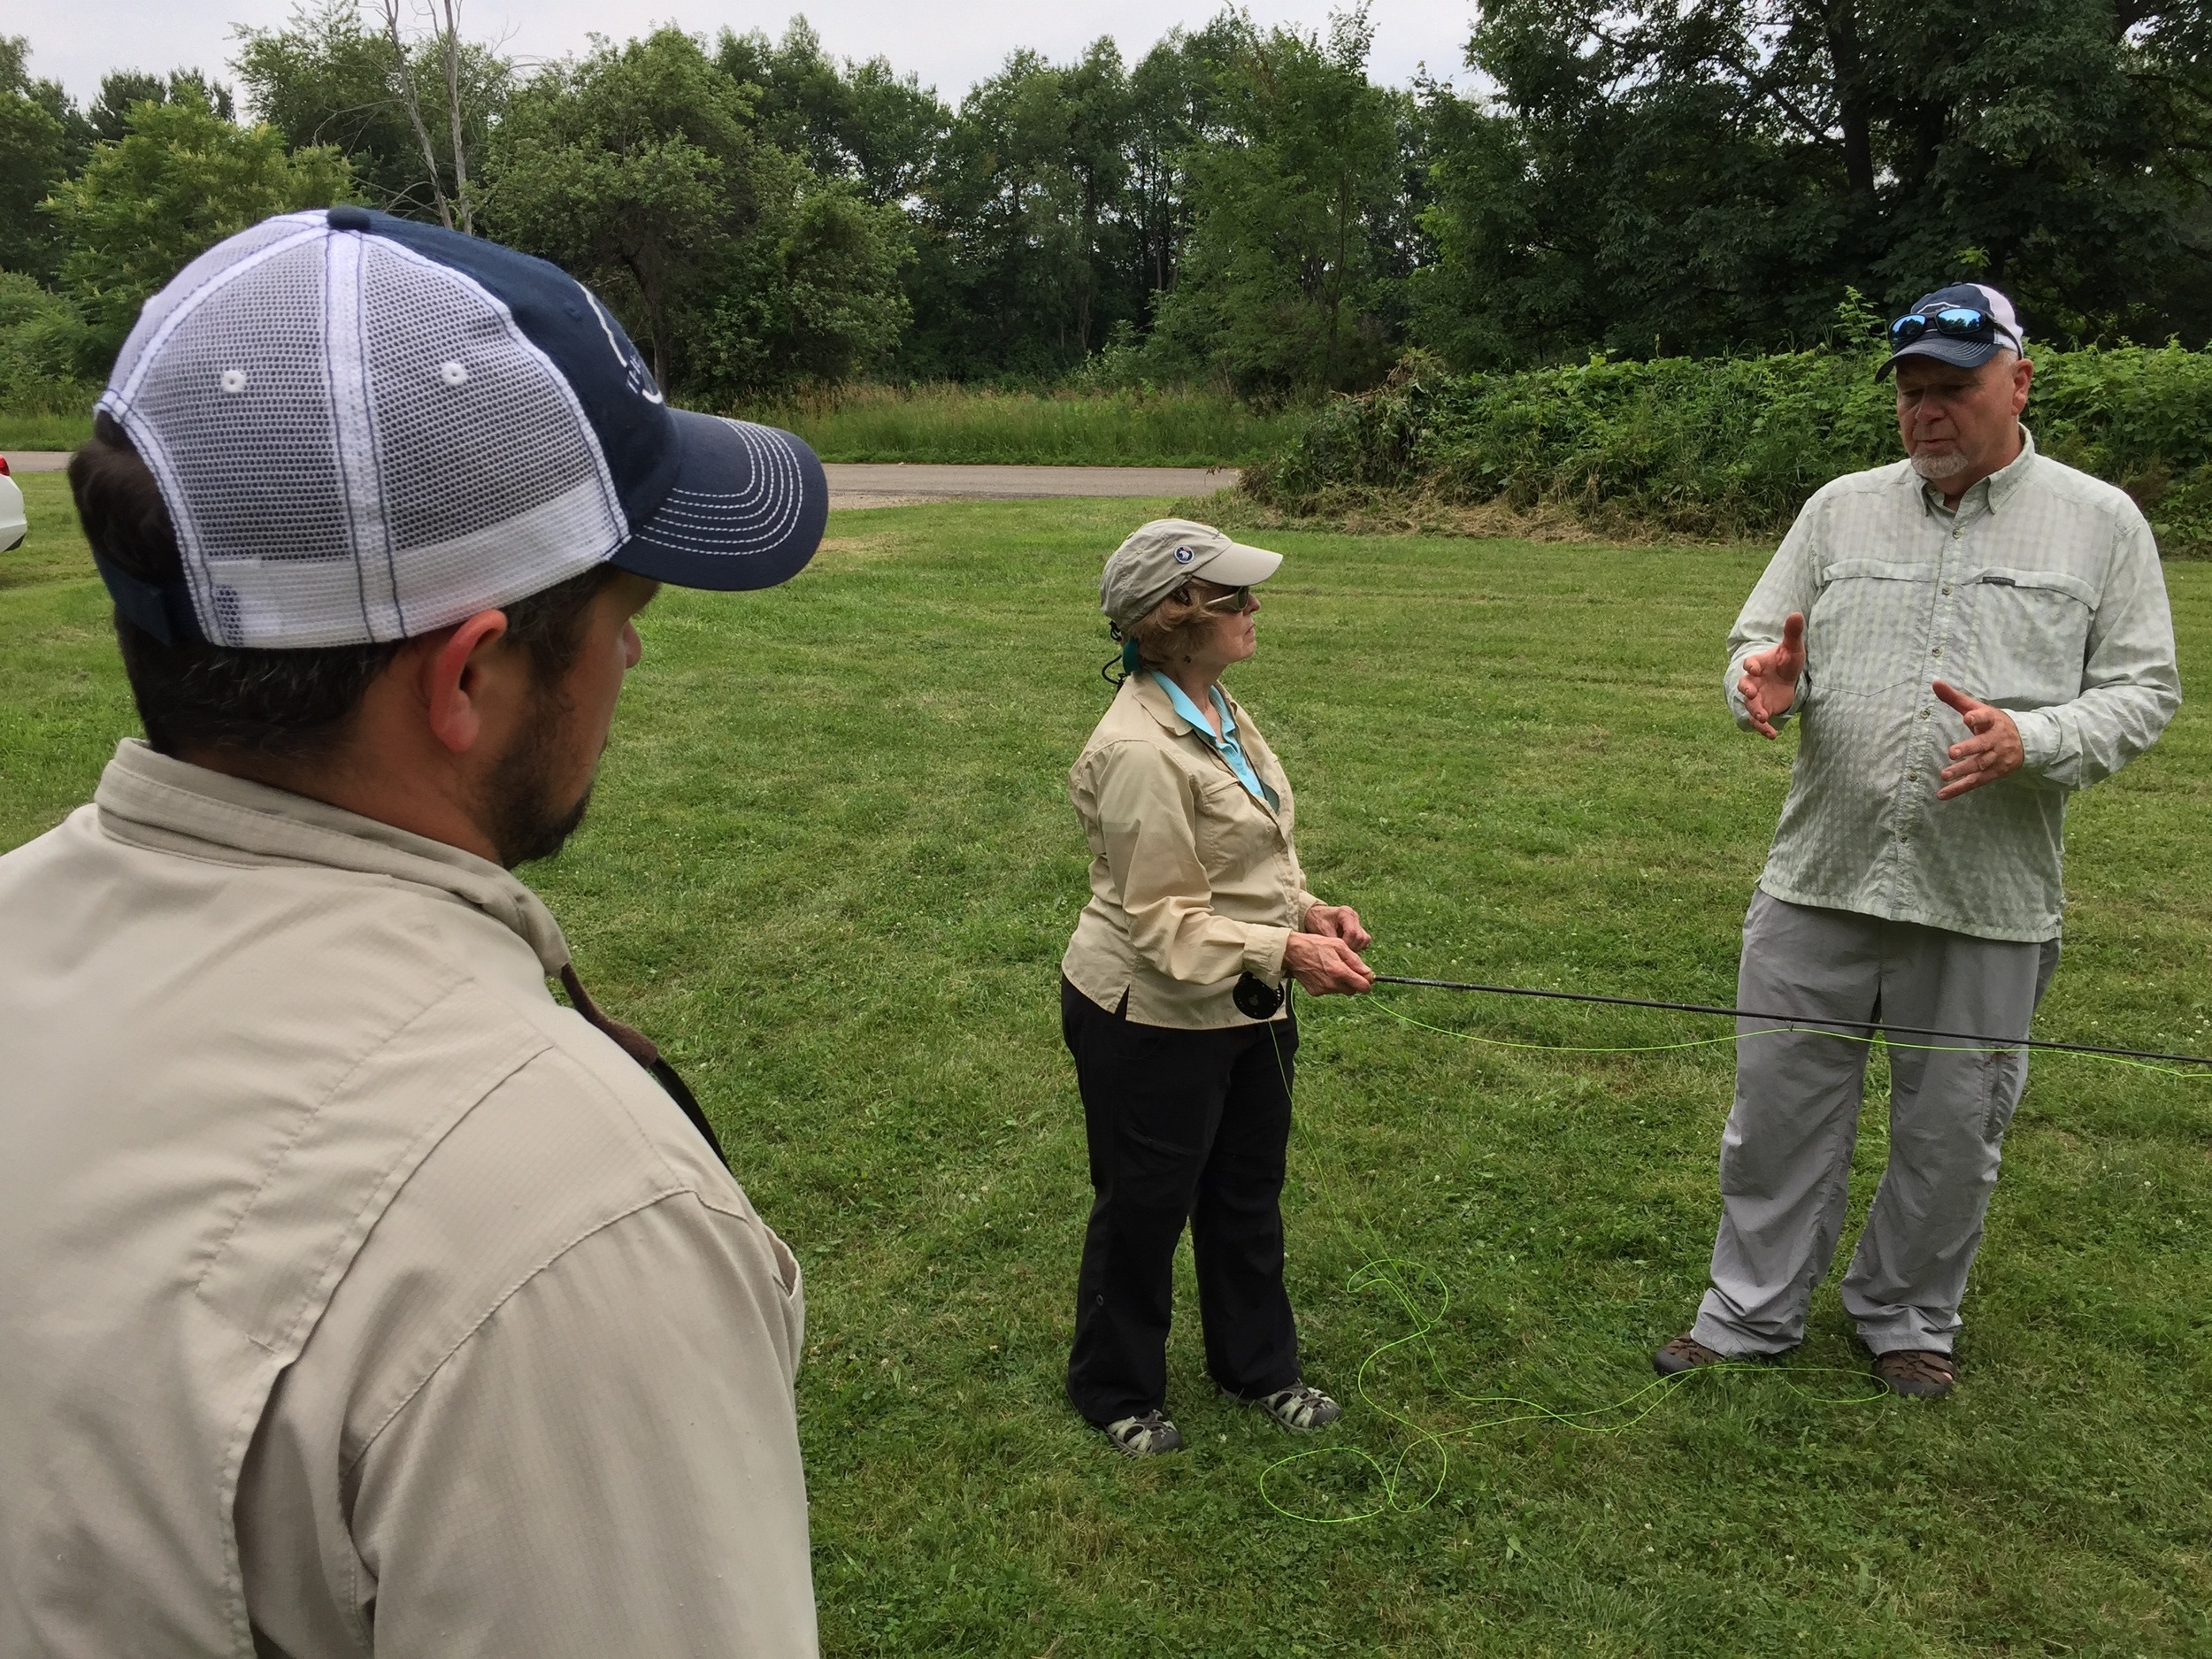 fly-fishing-lessons-the-fly-factor-school-of-the-rod-3.jpg